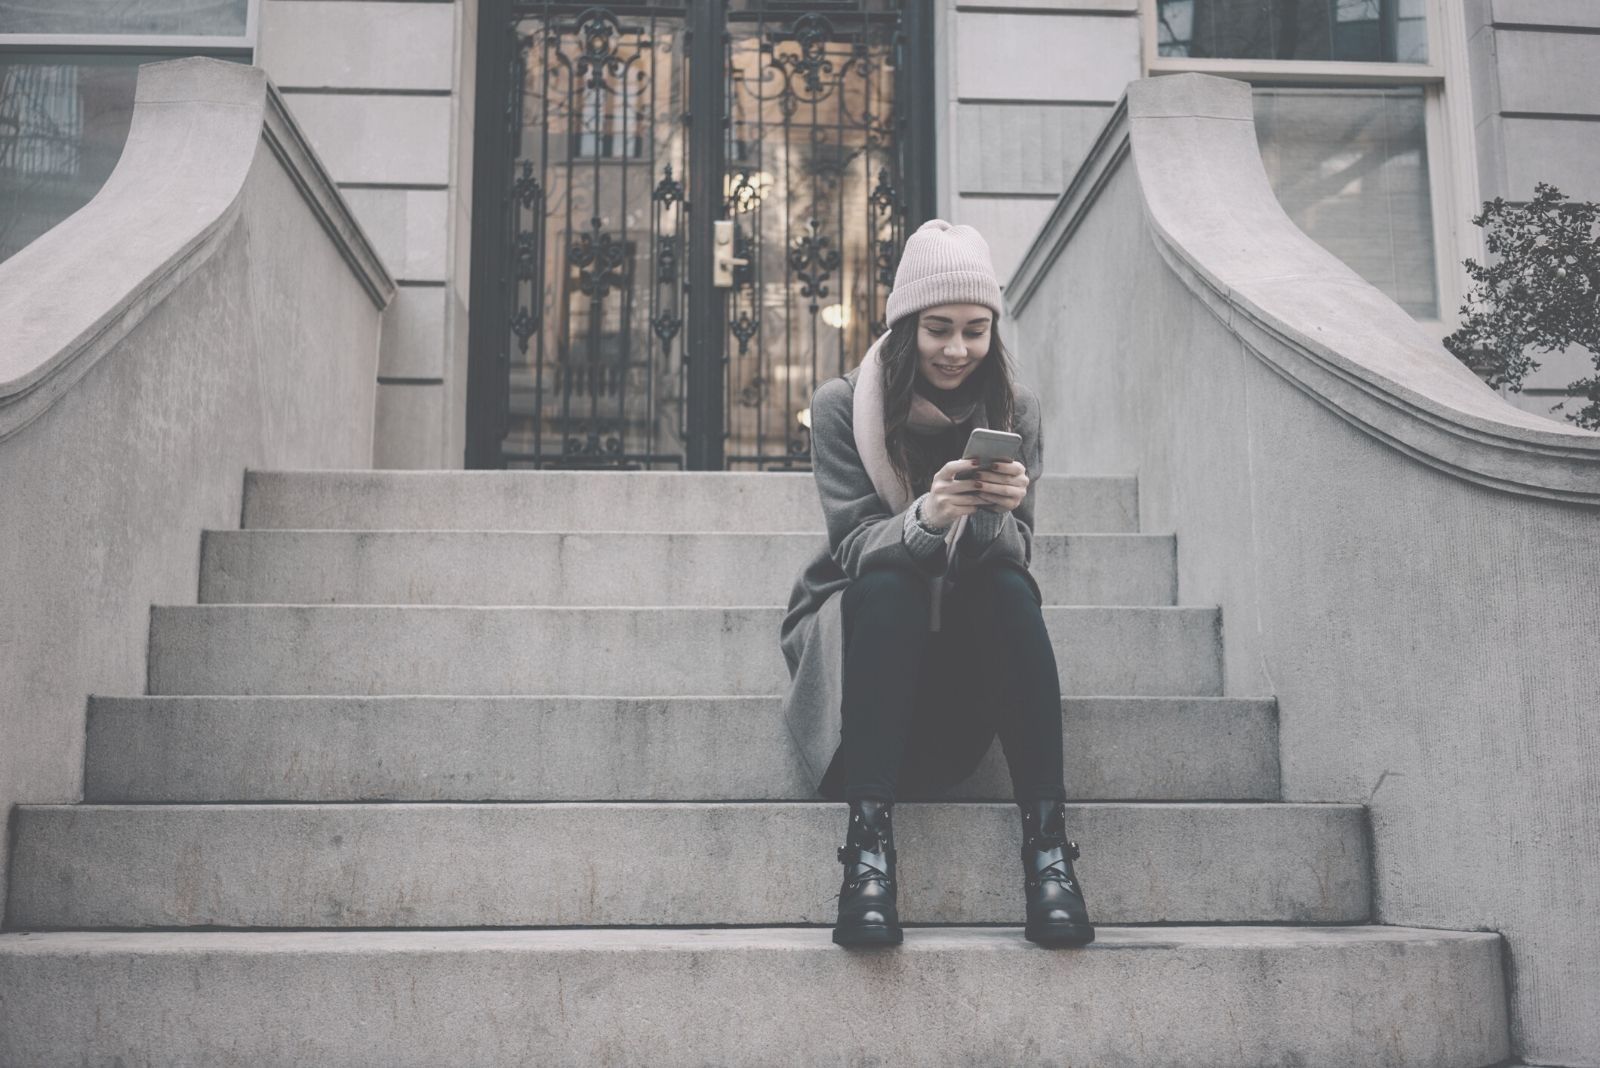 woman sitting on the stairs outside a building and texting on phone